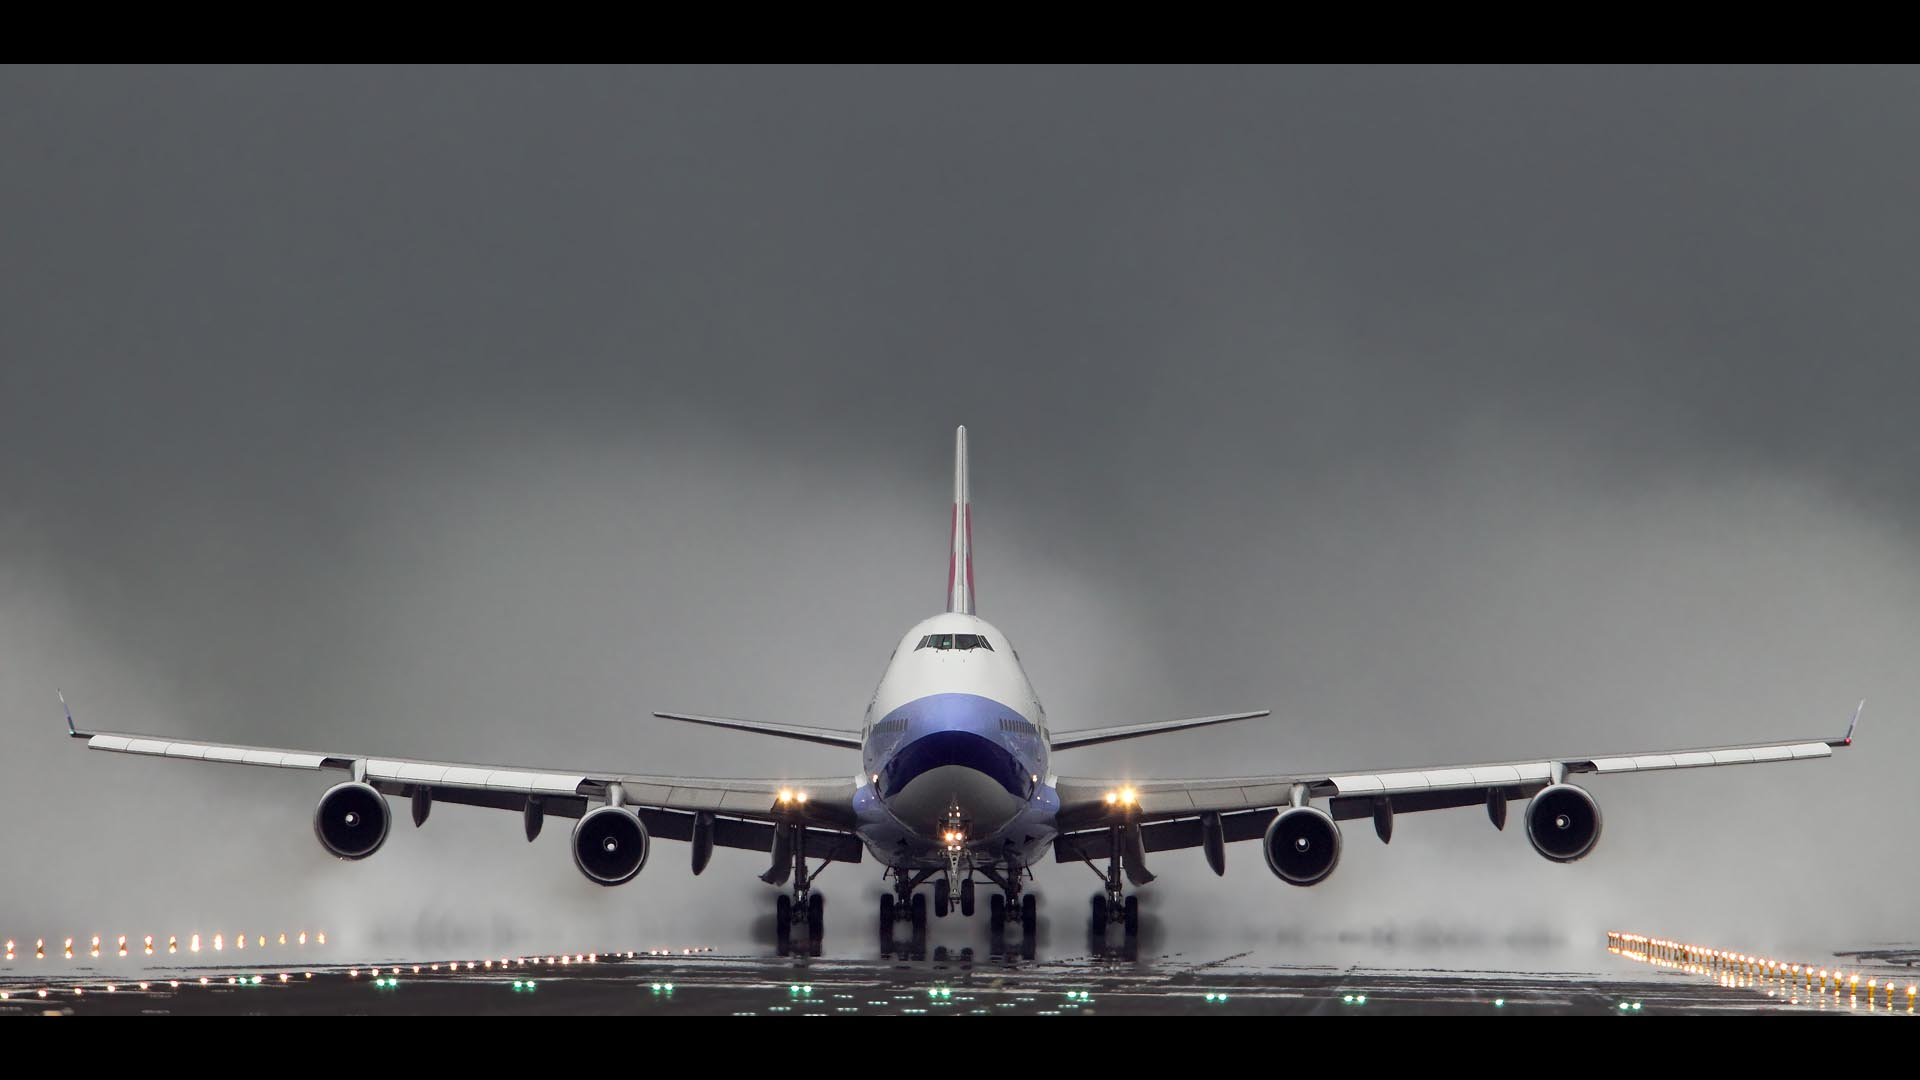 1920x1080 - Boeing 747 Wallpapers 7